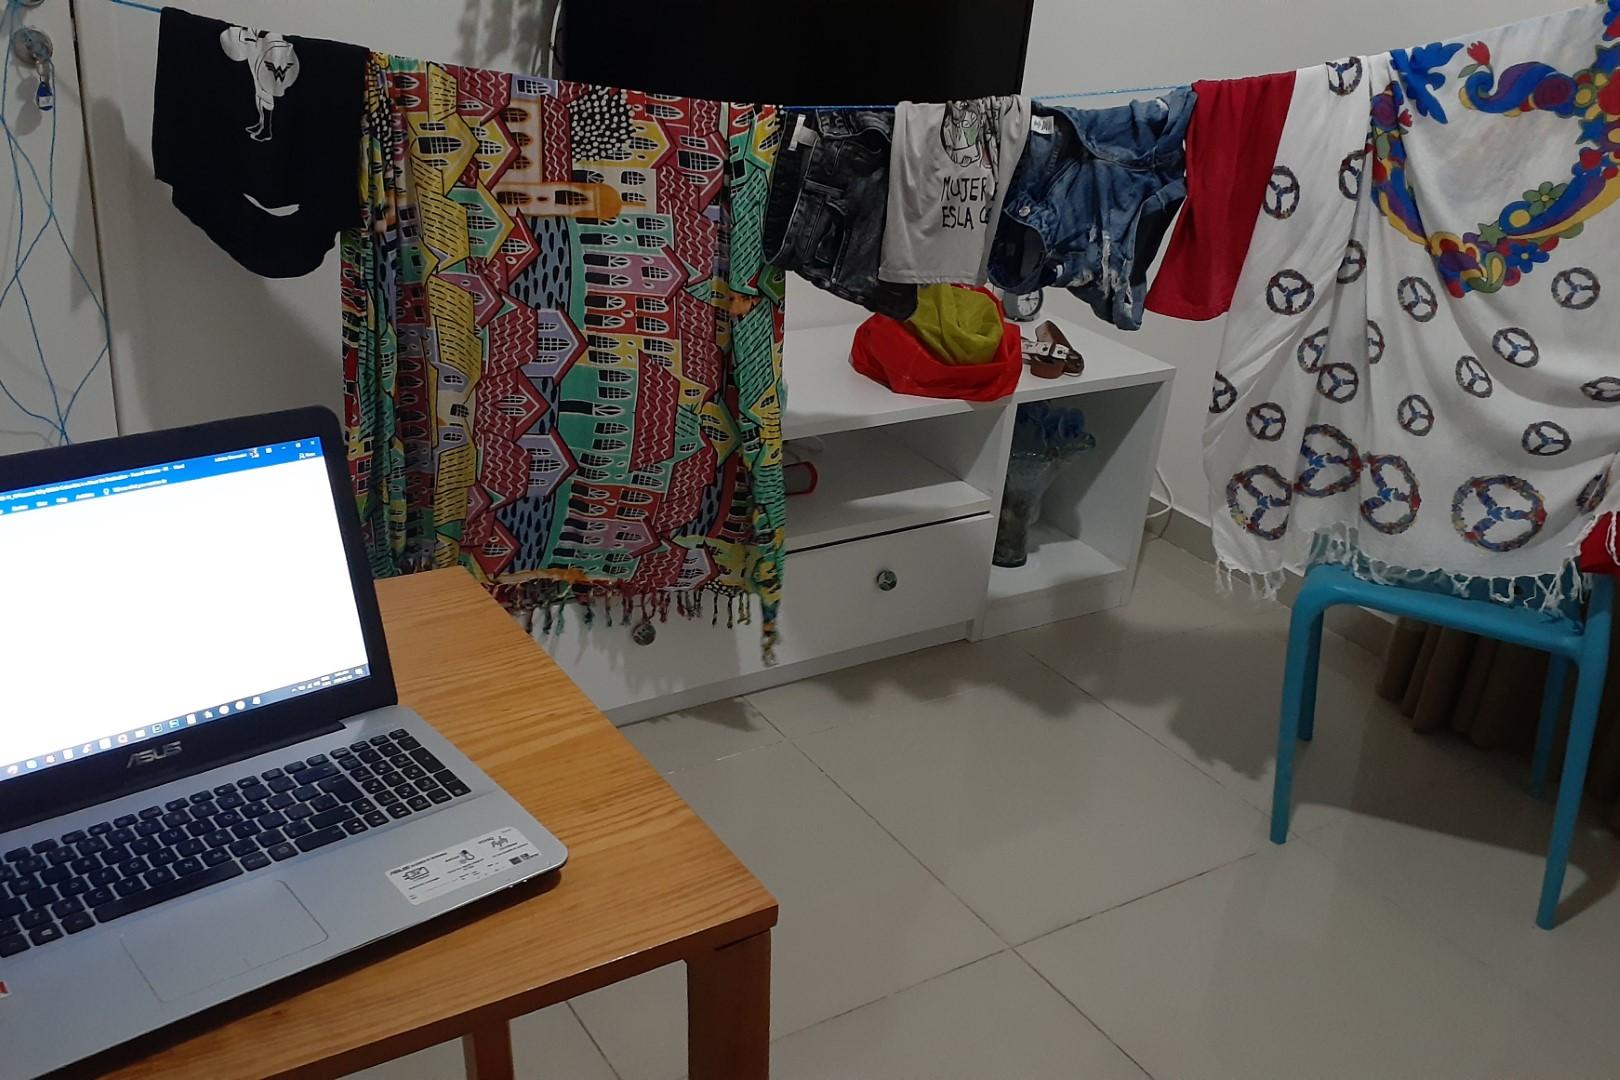 Last night in Salvador, drying laundry